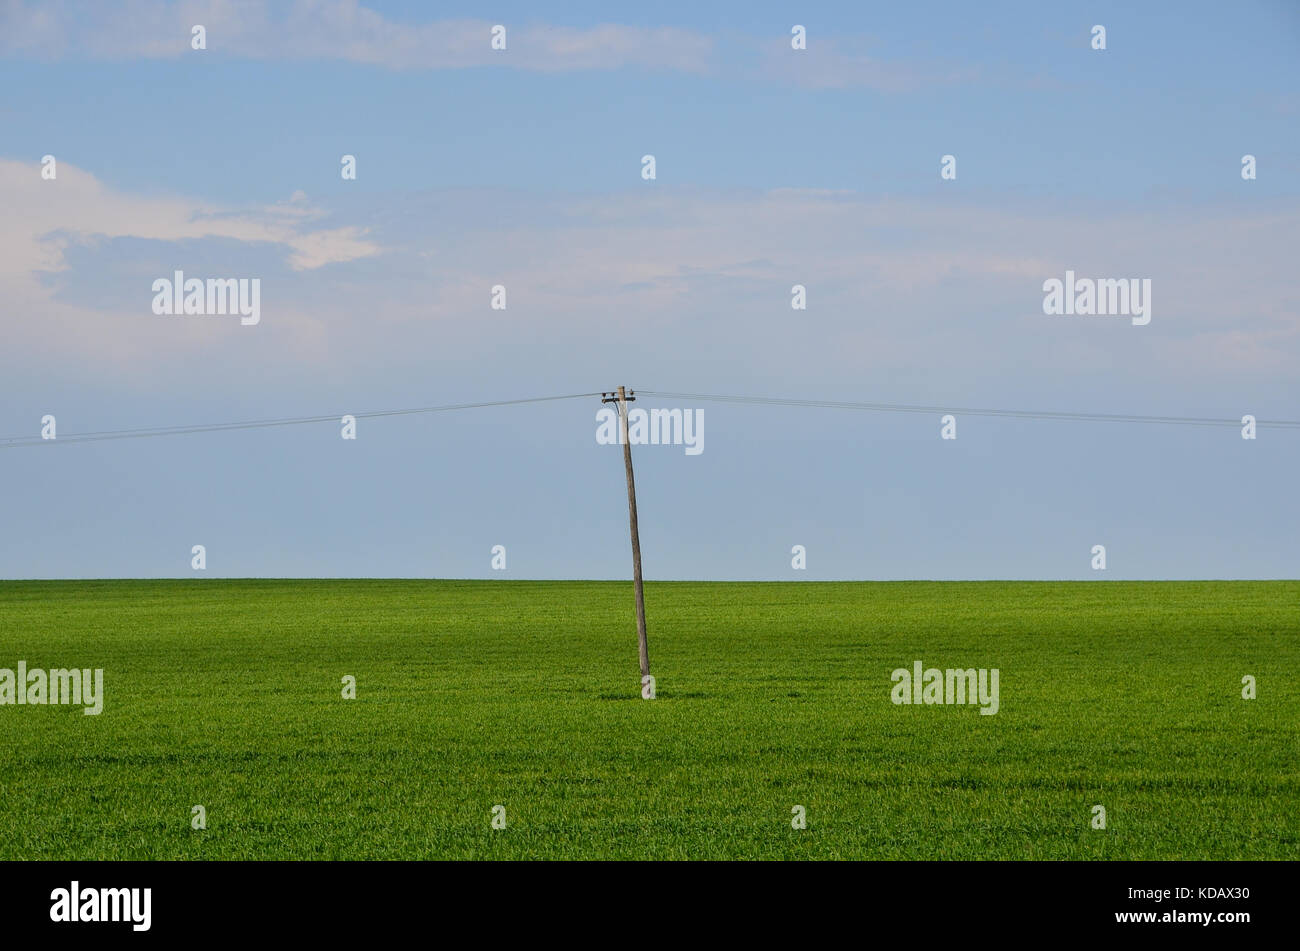 Minimalist landscape of one power pole in middle of green field with blue sky. Stock Photo